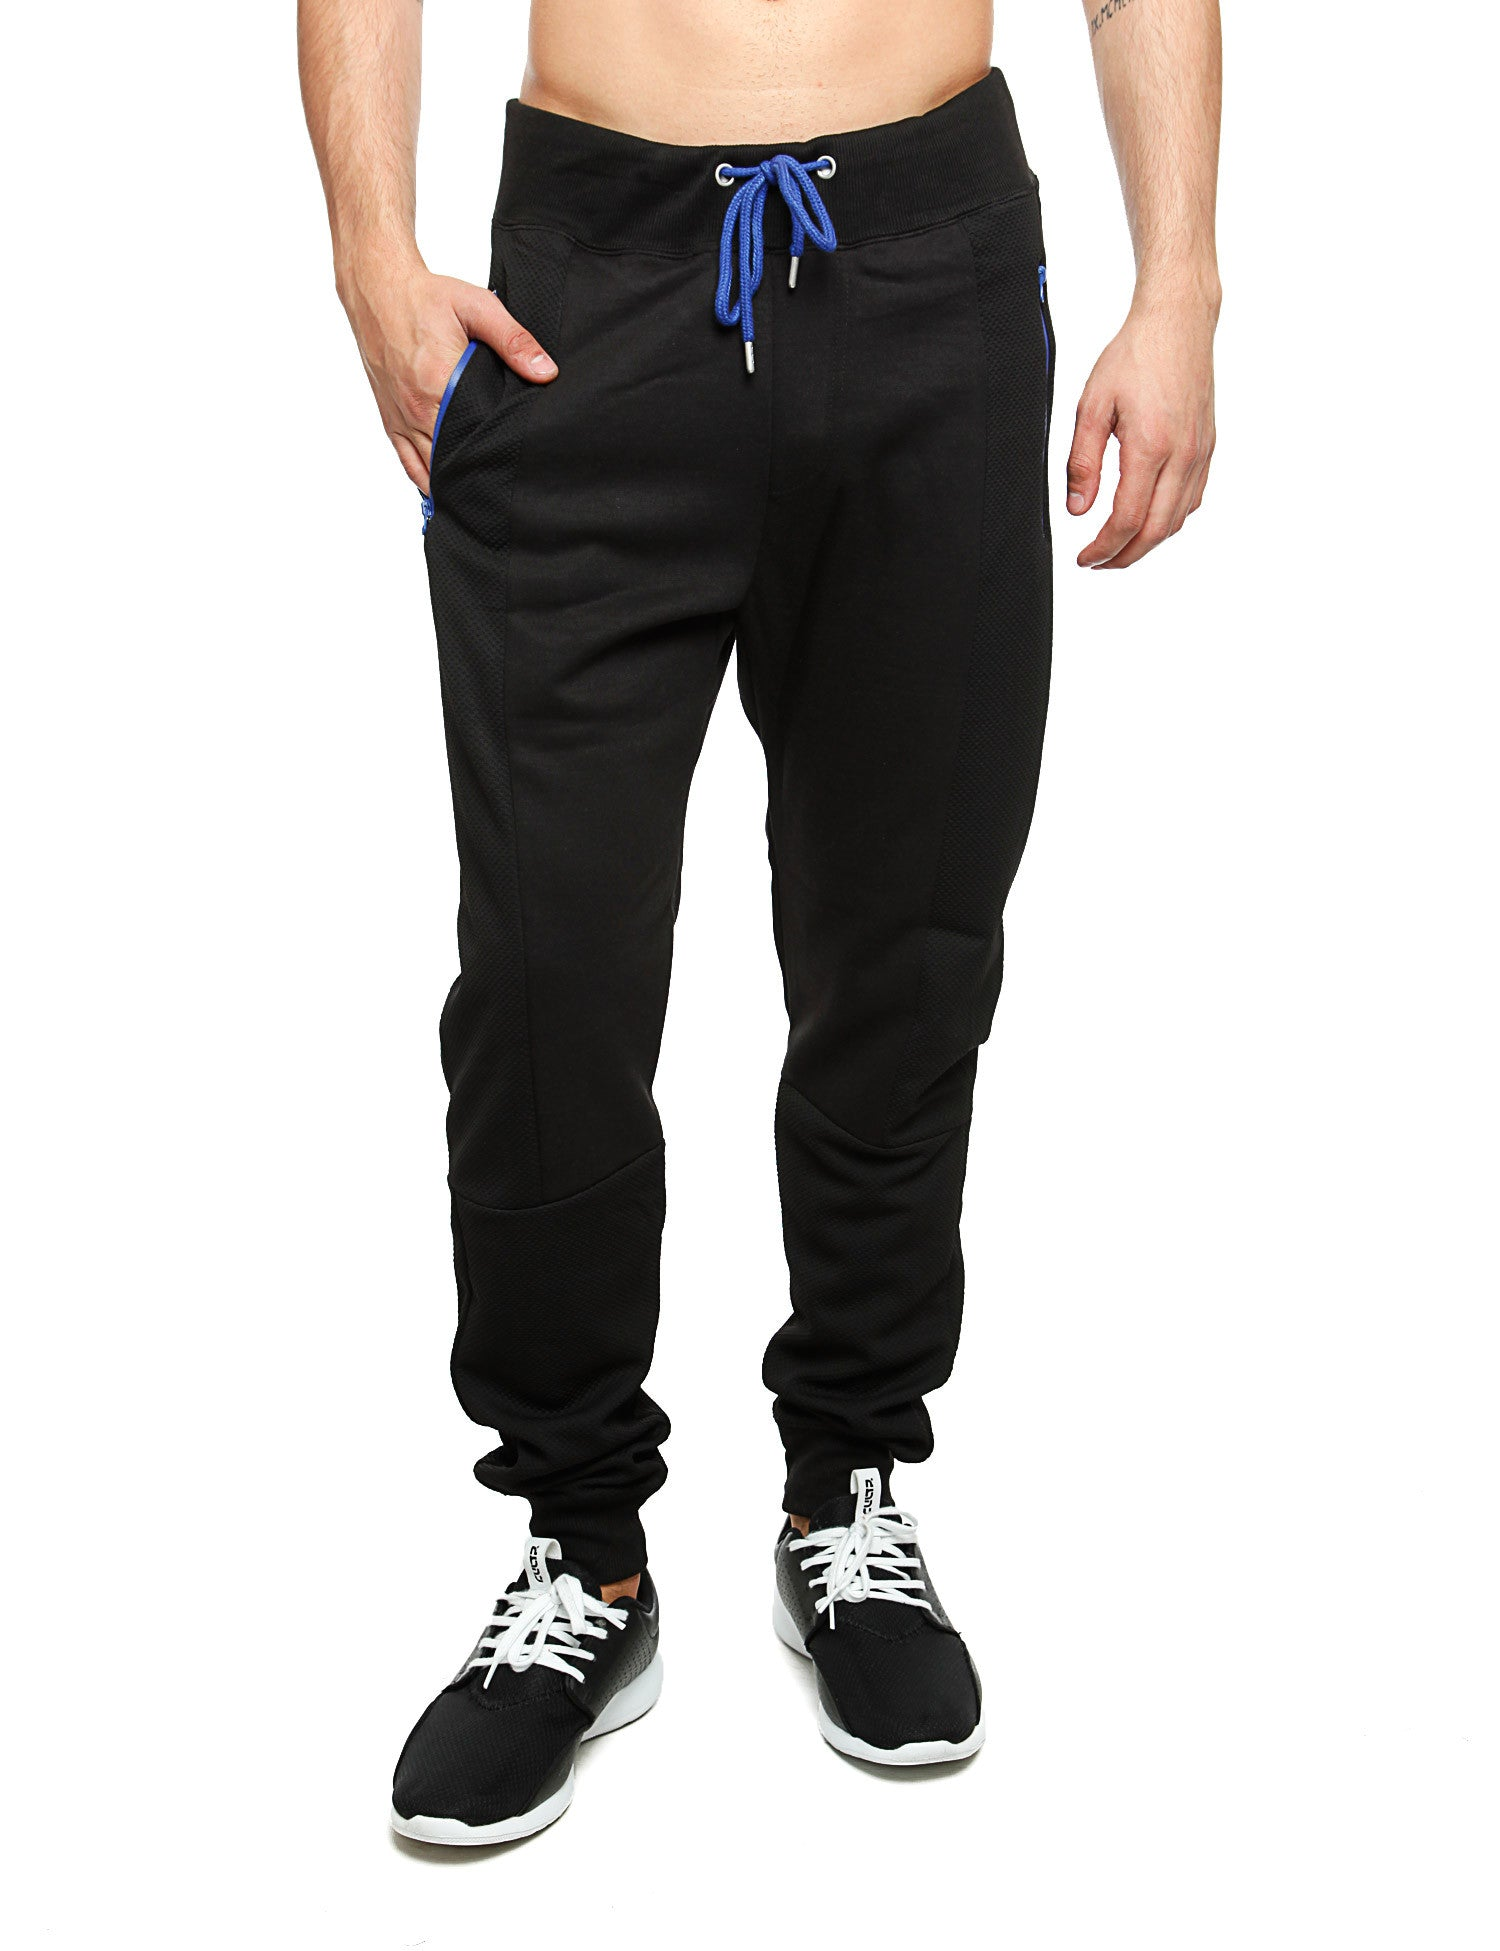 Royal Blue Jersey Mixed Sweatpants 24015P Black